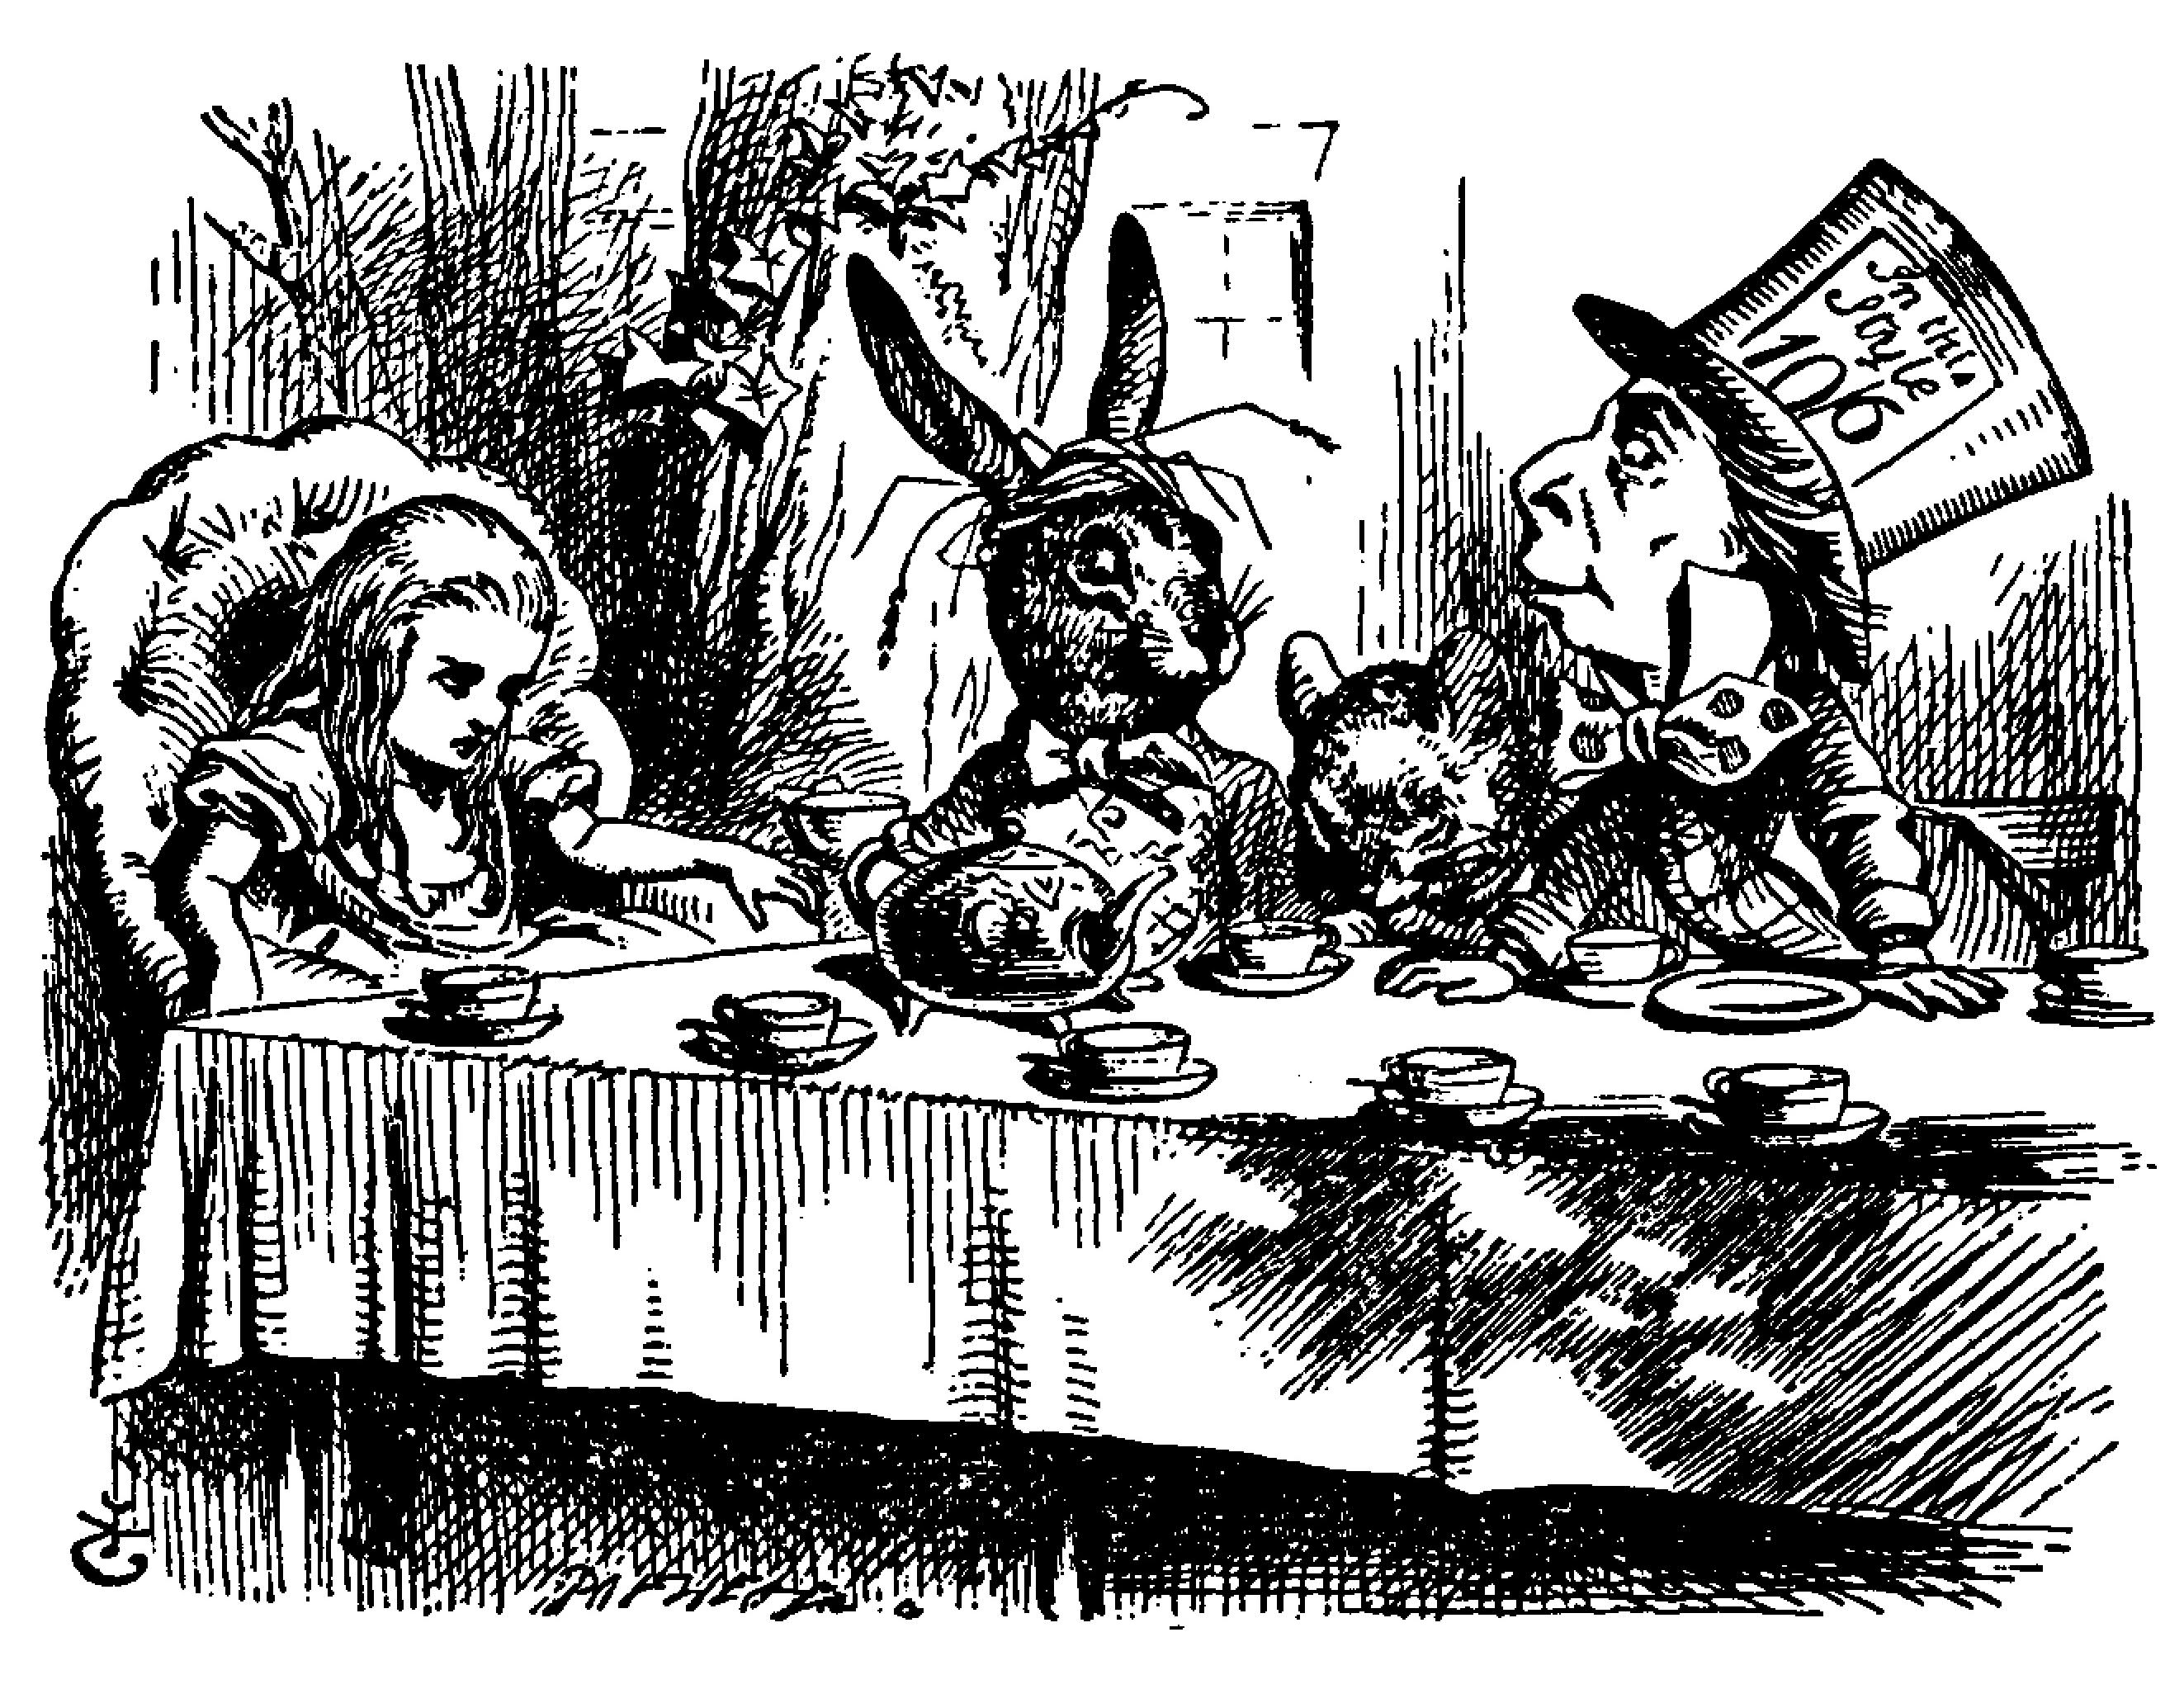 In this black-and-white image rendered in fine black lines, four figures are seated at a long table set for tea. A girl with long light-colored hair is seated in a plush armchair at the left, facing to the right. To her right is a rabbit wearing human clo